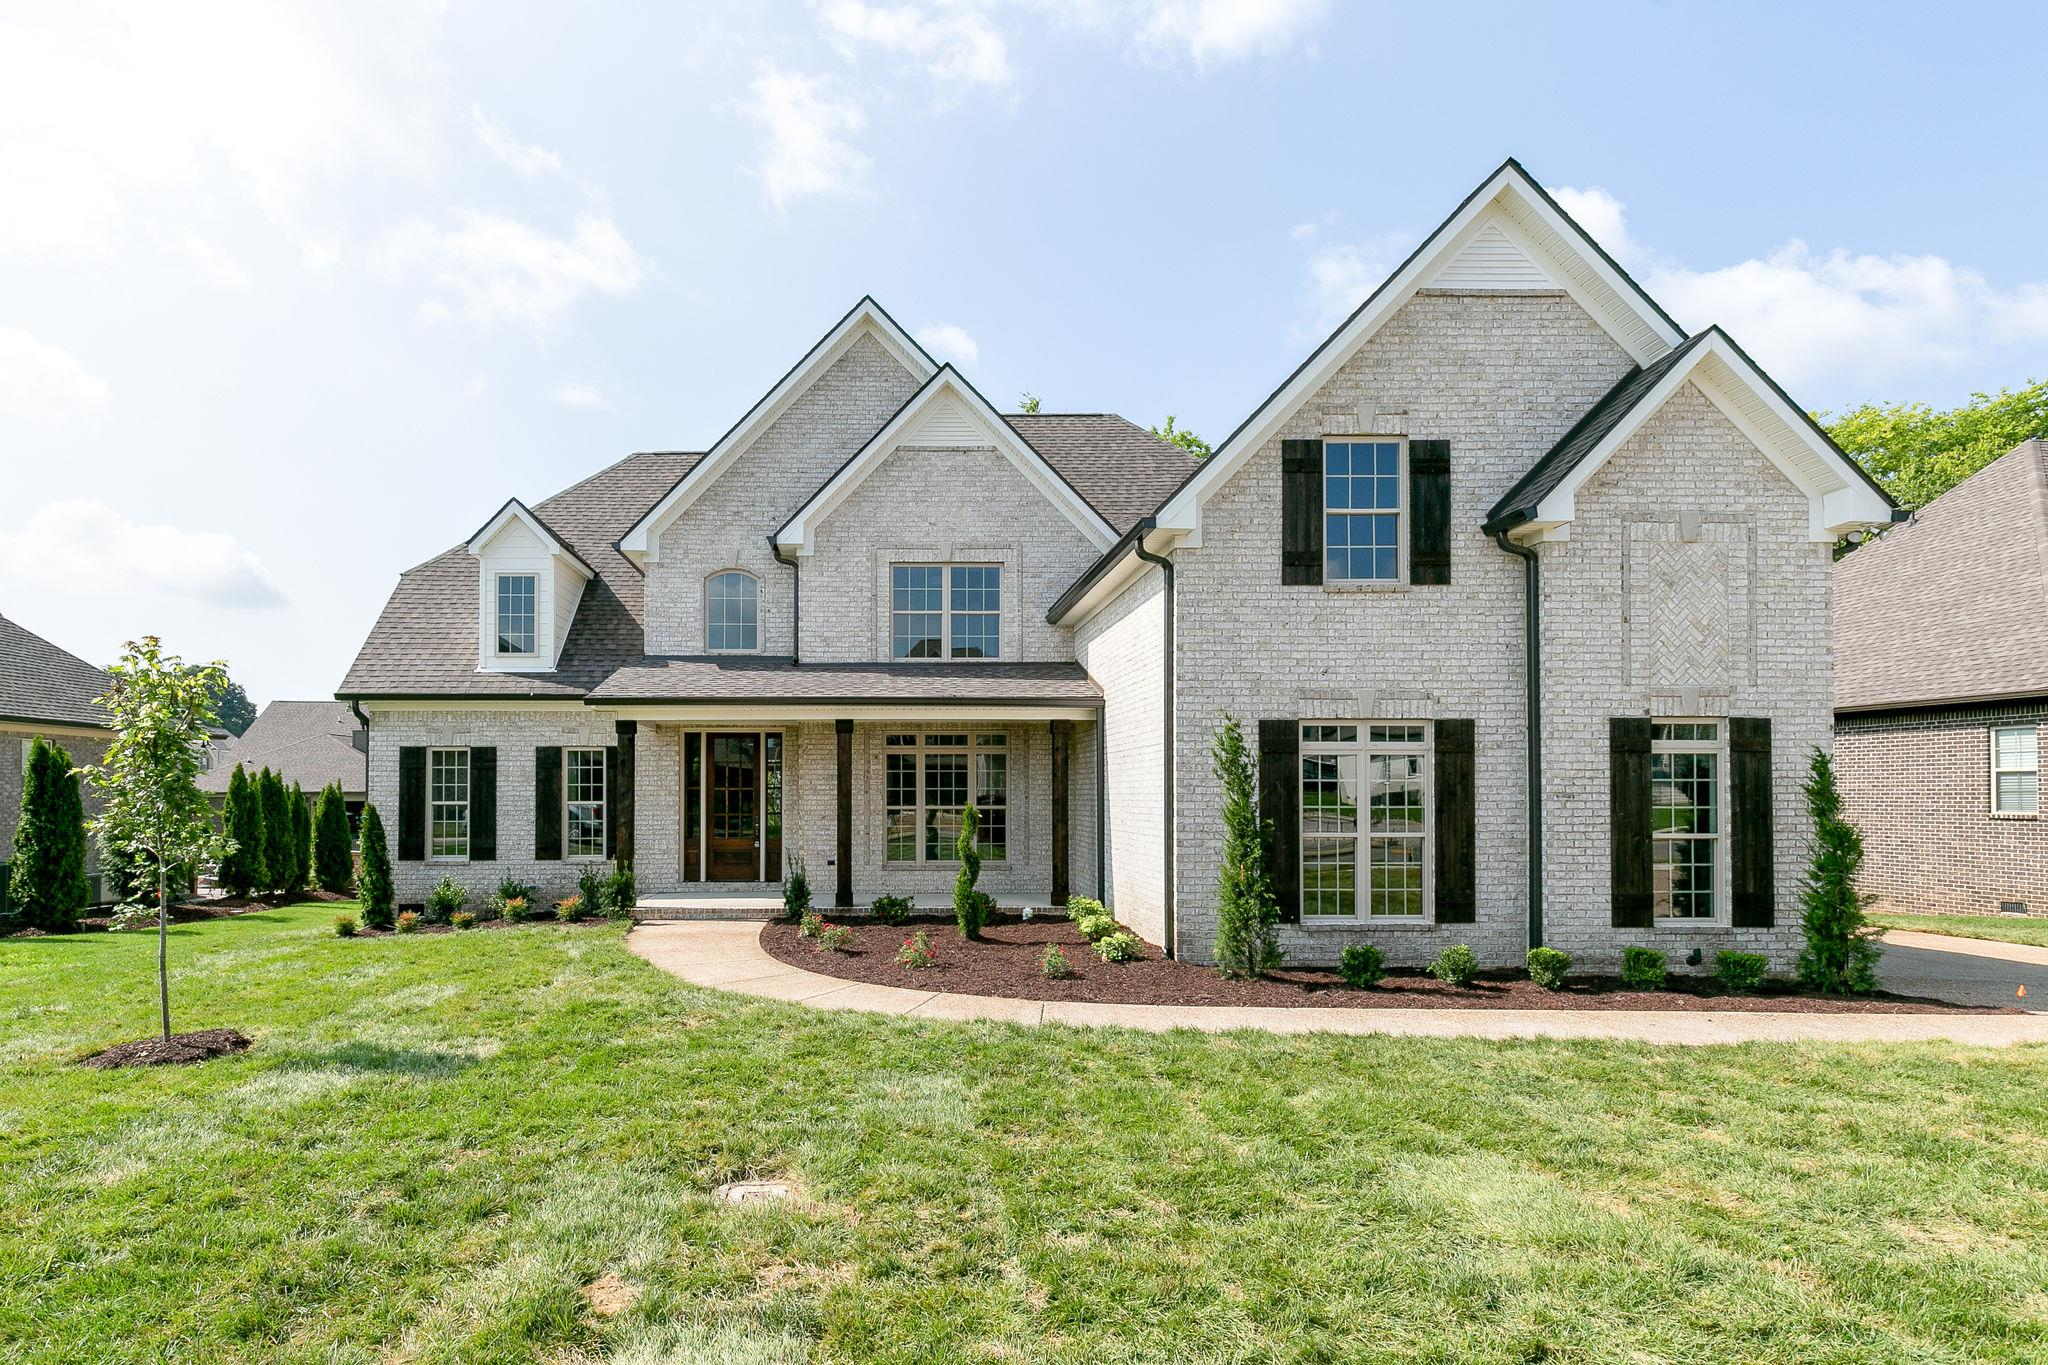 2967 Stewart Campbell Pt (244), Spring Hill, Tennessee